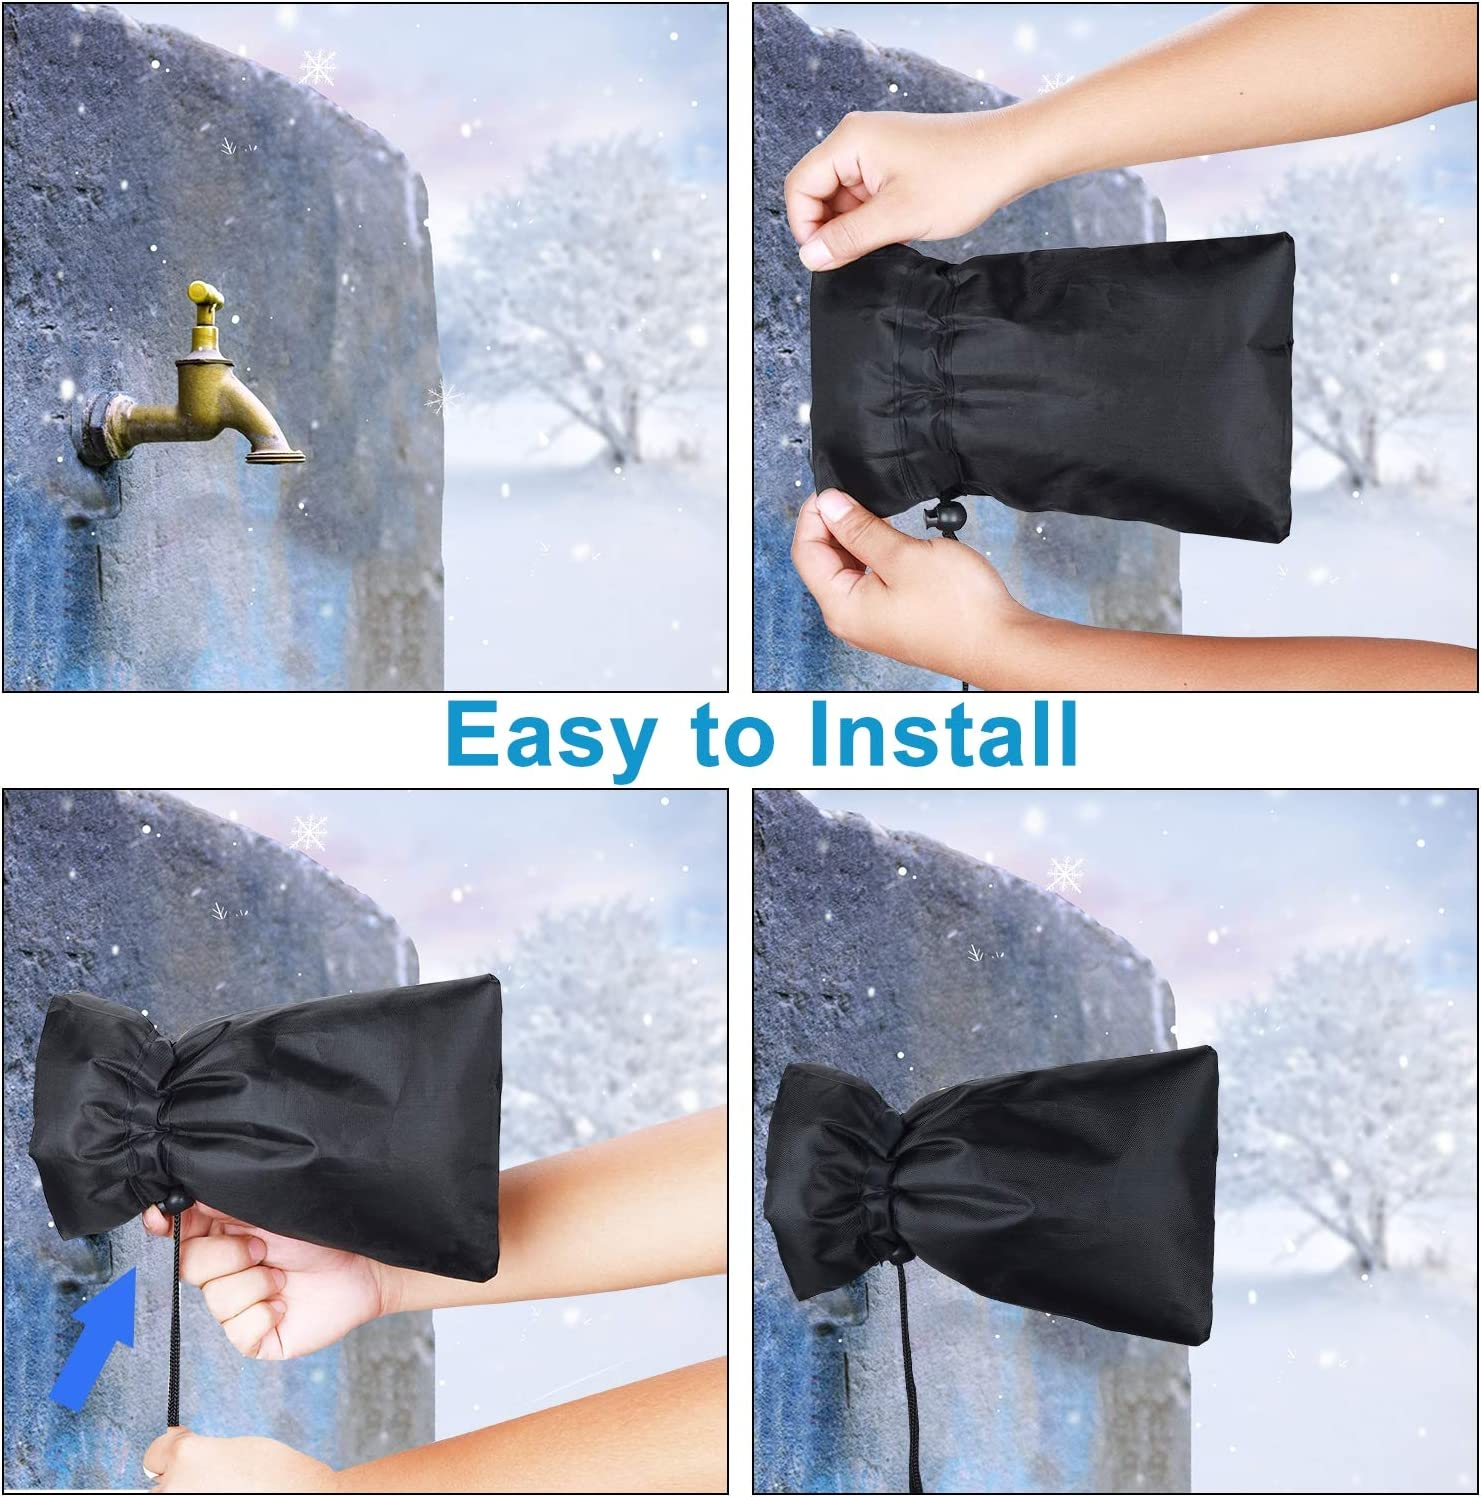 """HOMMAND Outdoor Faucet Cover for Winter, 3 Pack Thickened Anti-Frozen Waterproof Outdoor Faucet Protector, 9"""" H x 6"""" W (Universal) : Garden & Outdoor"""